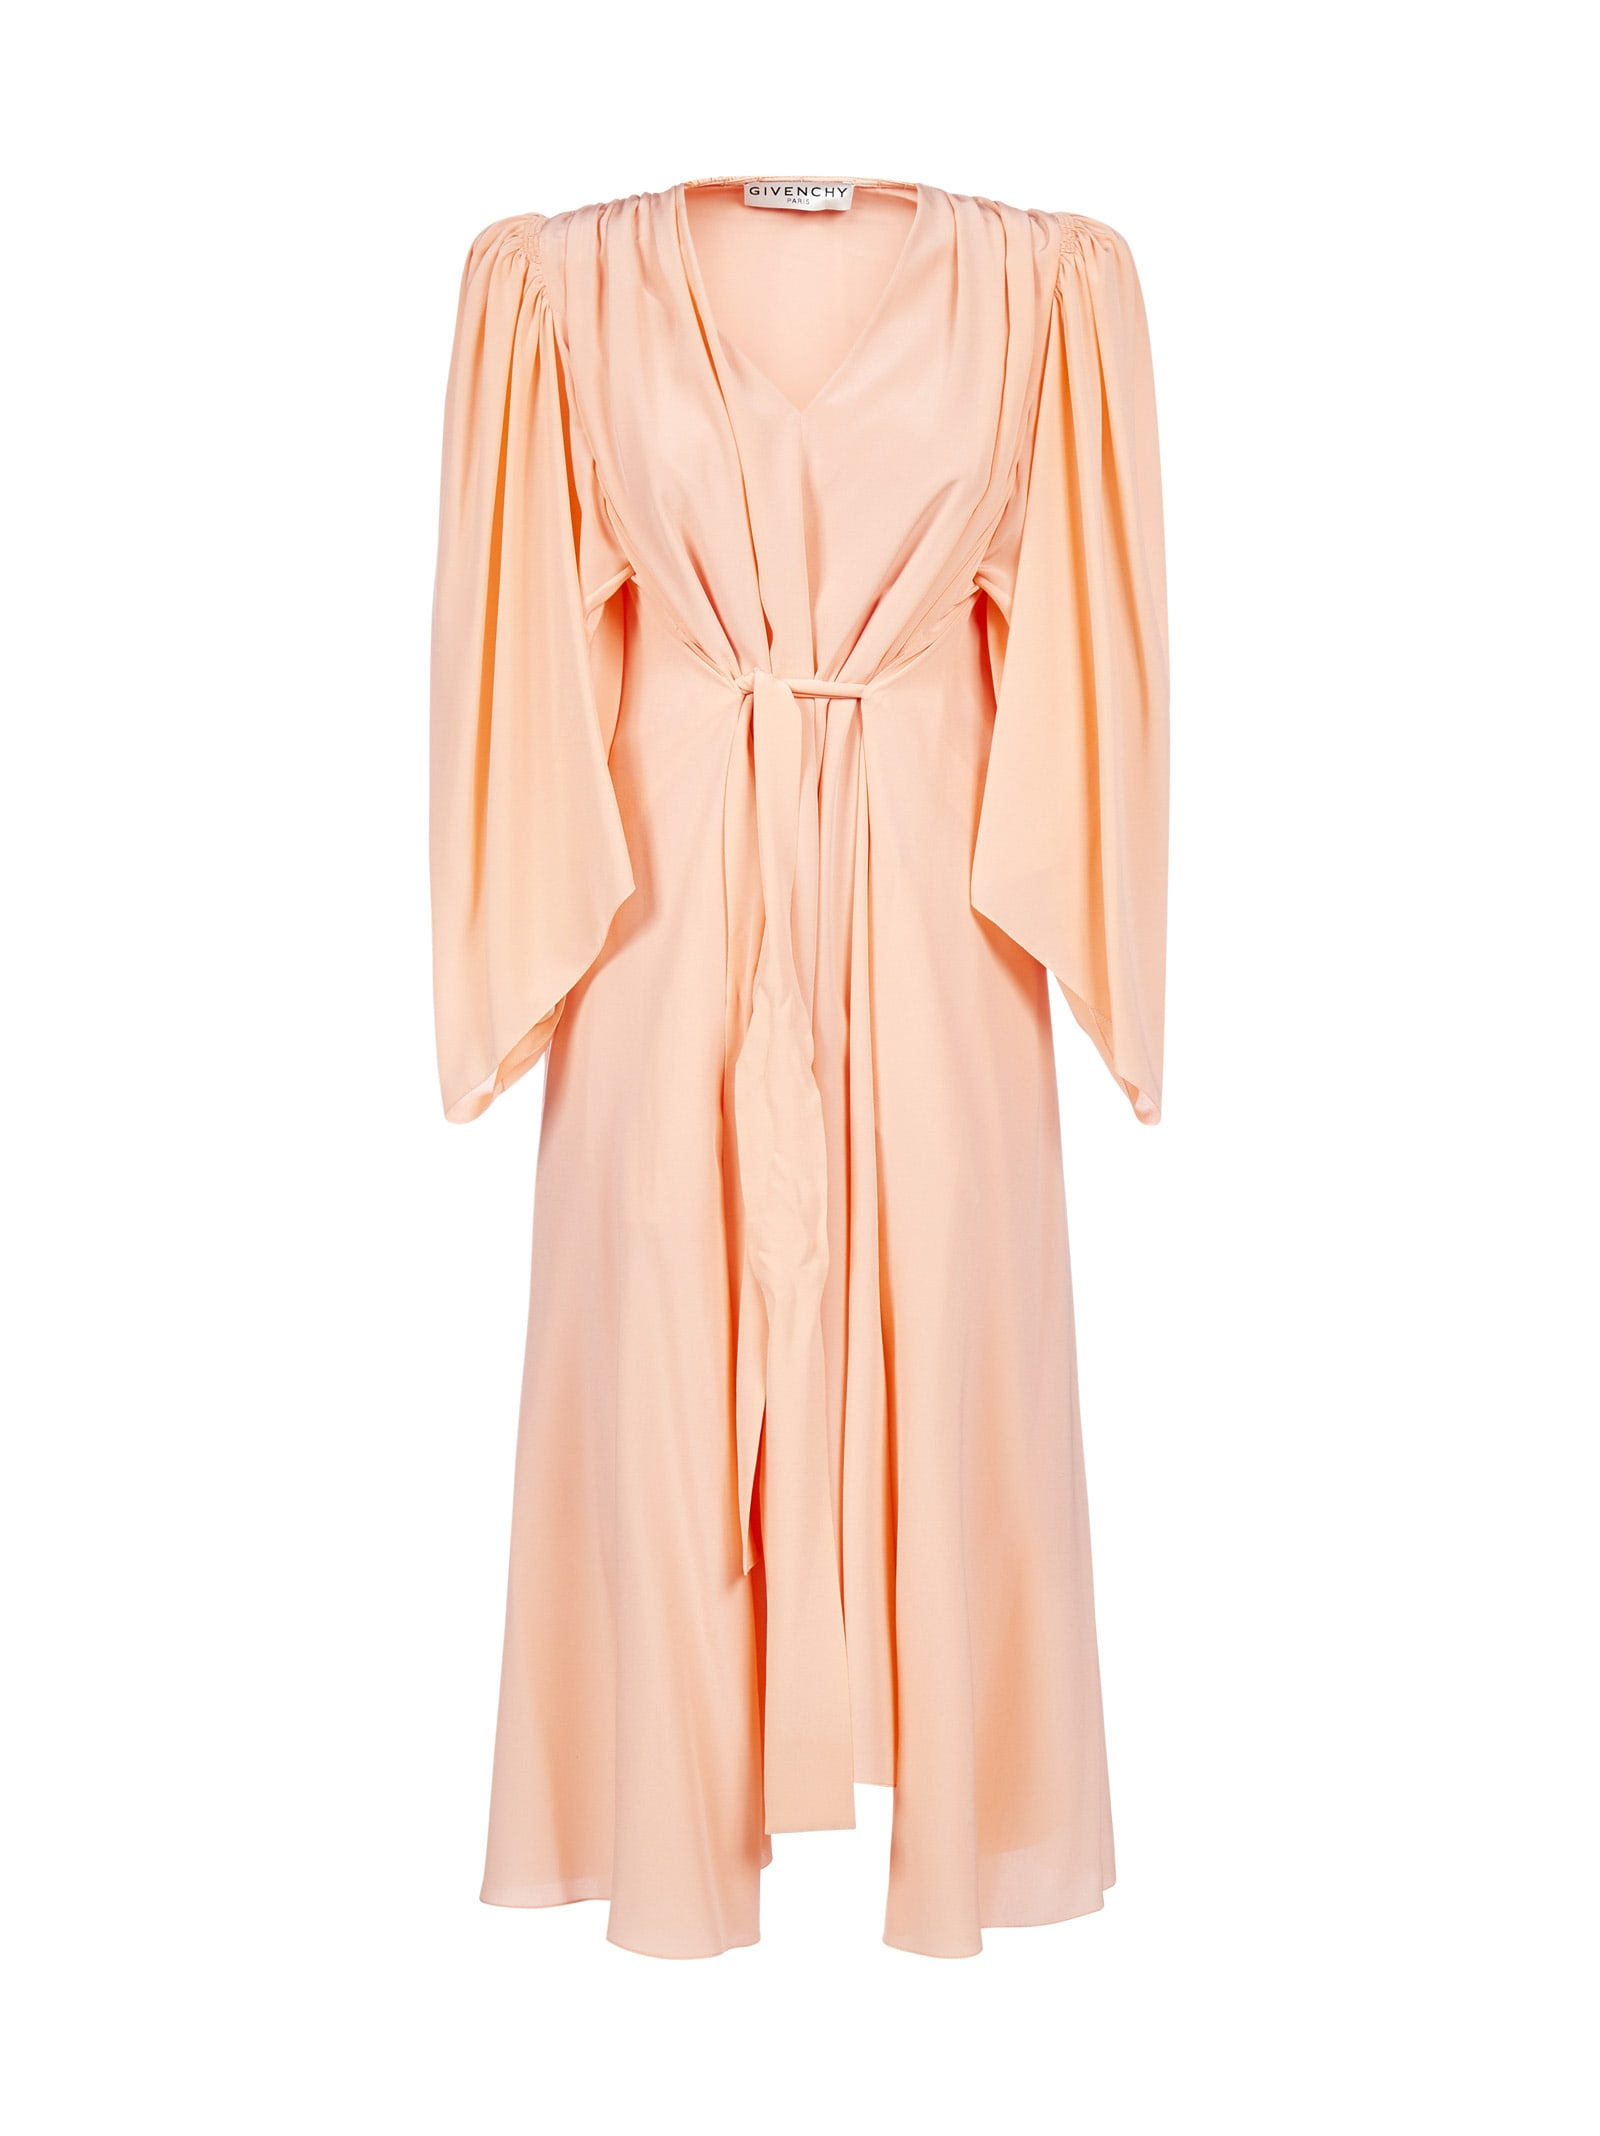 Givenchy Belted Silk Dress